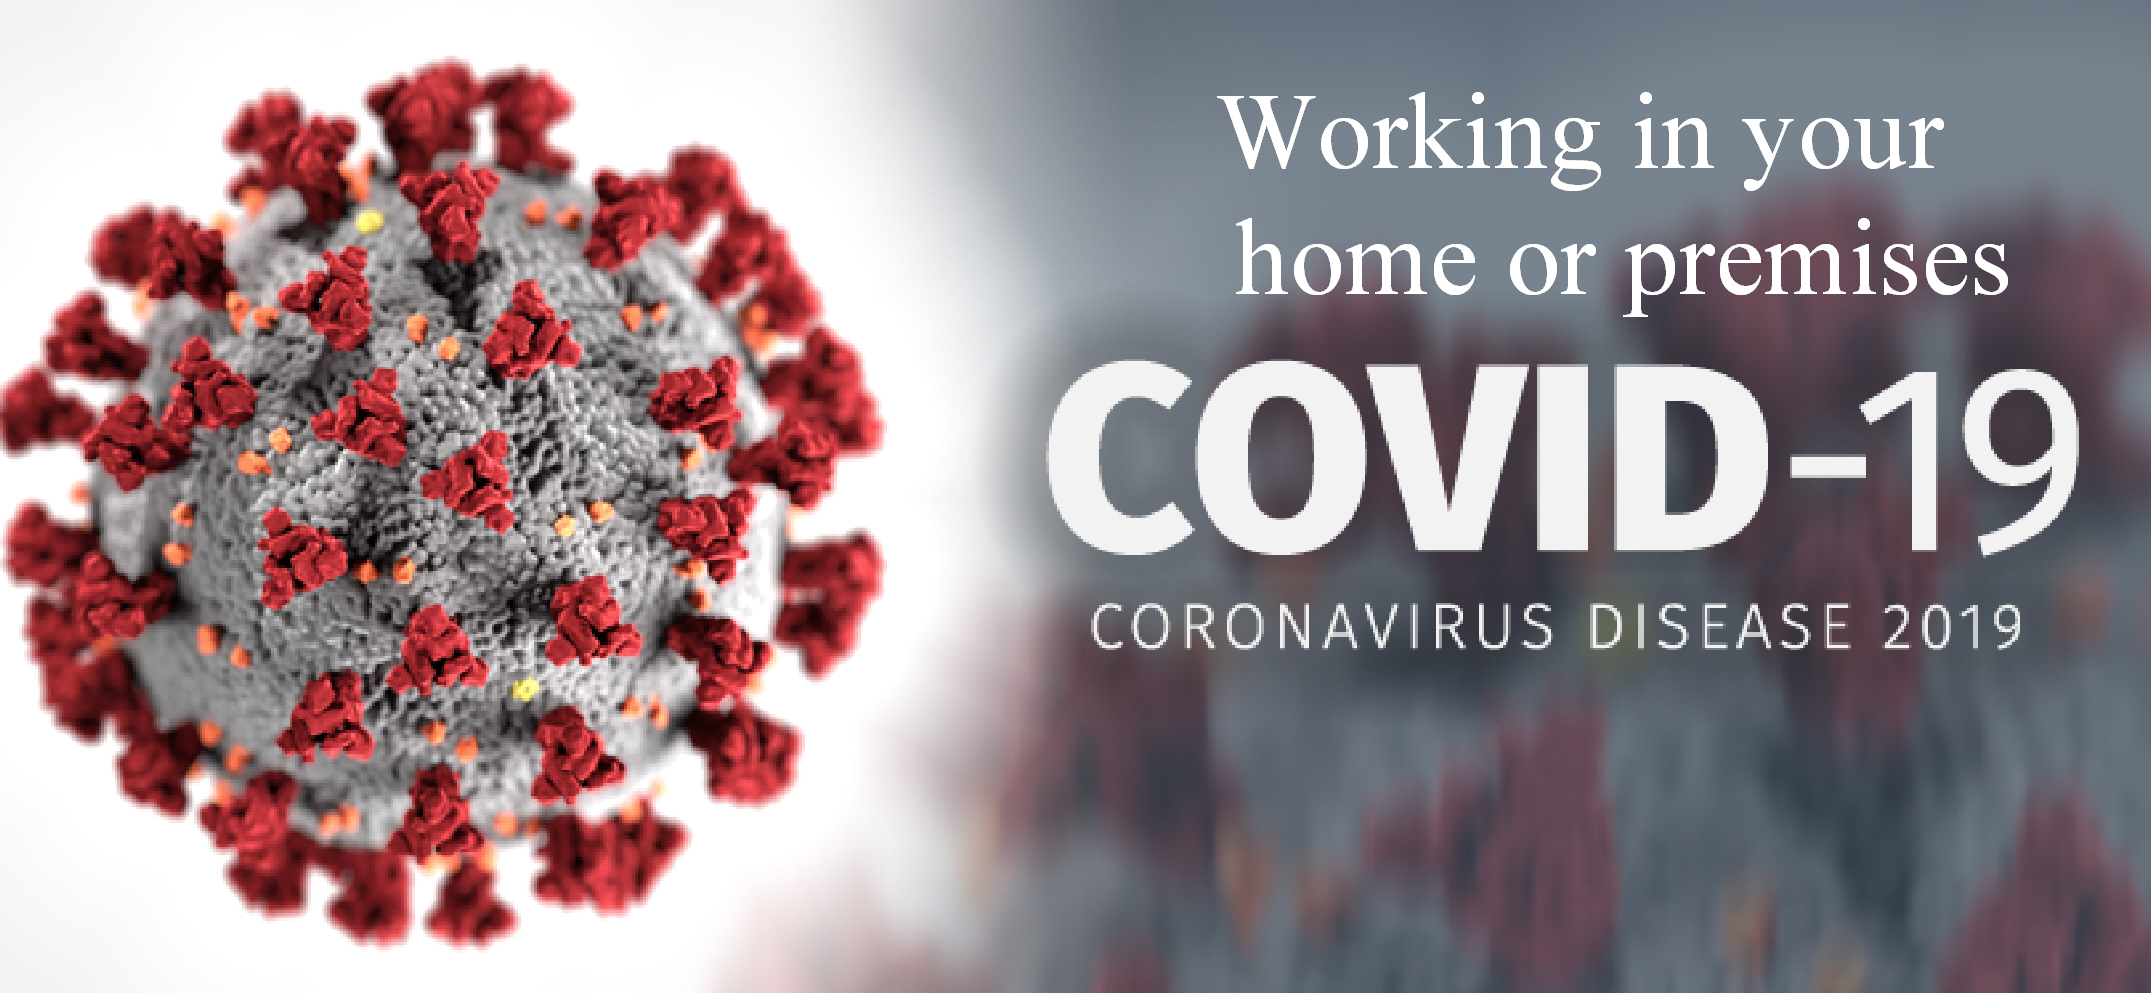 coronavirus working in your home or premises